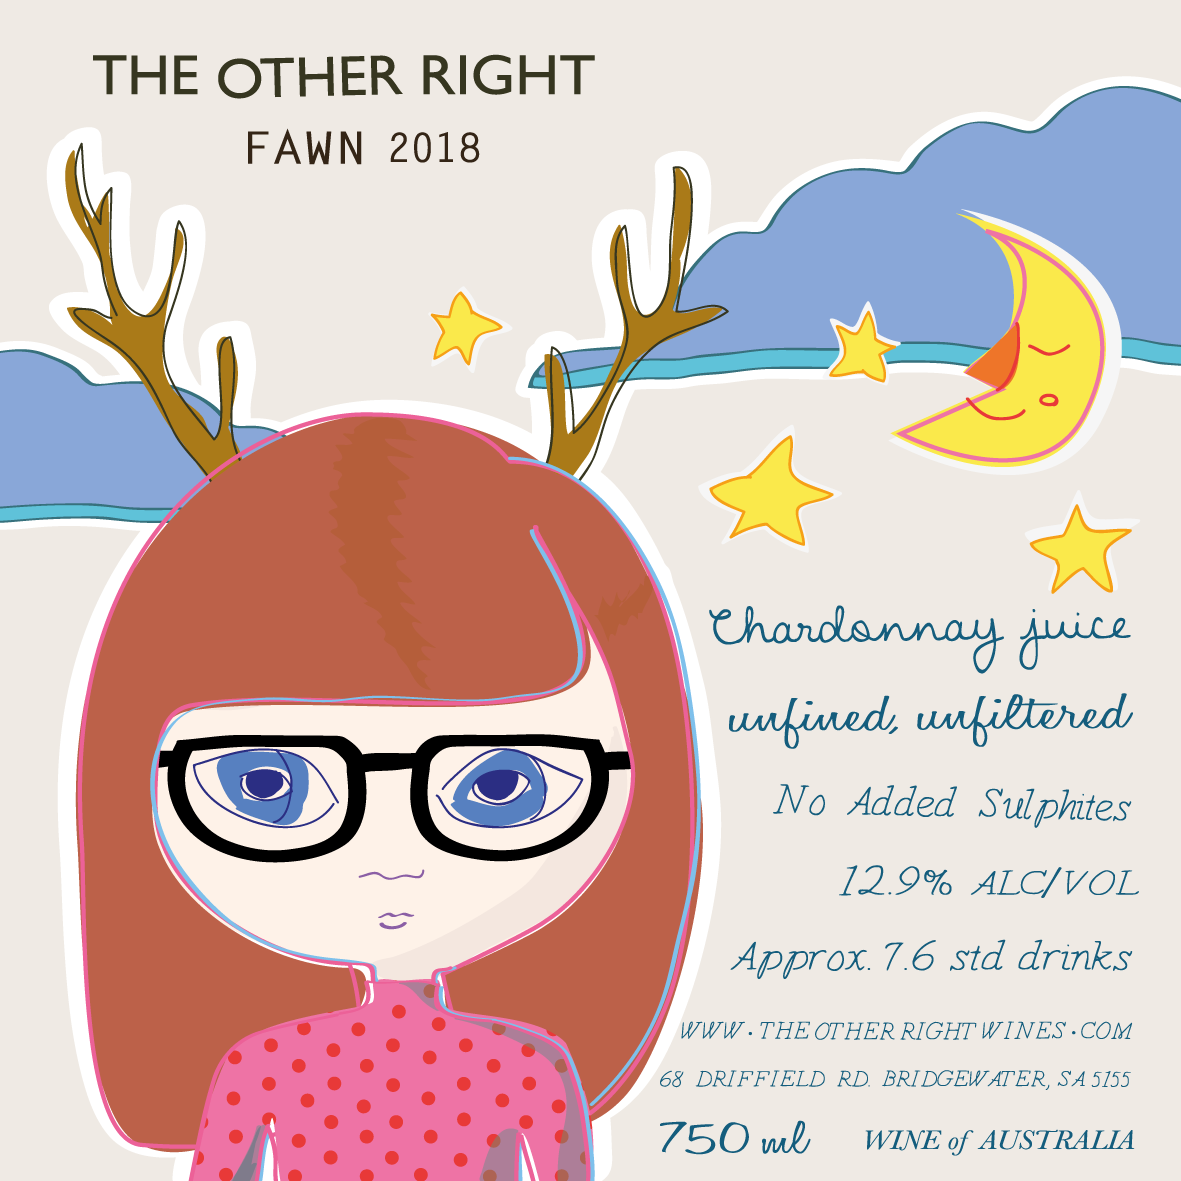 The-Other-Right-Wine-Fawn-2018